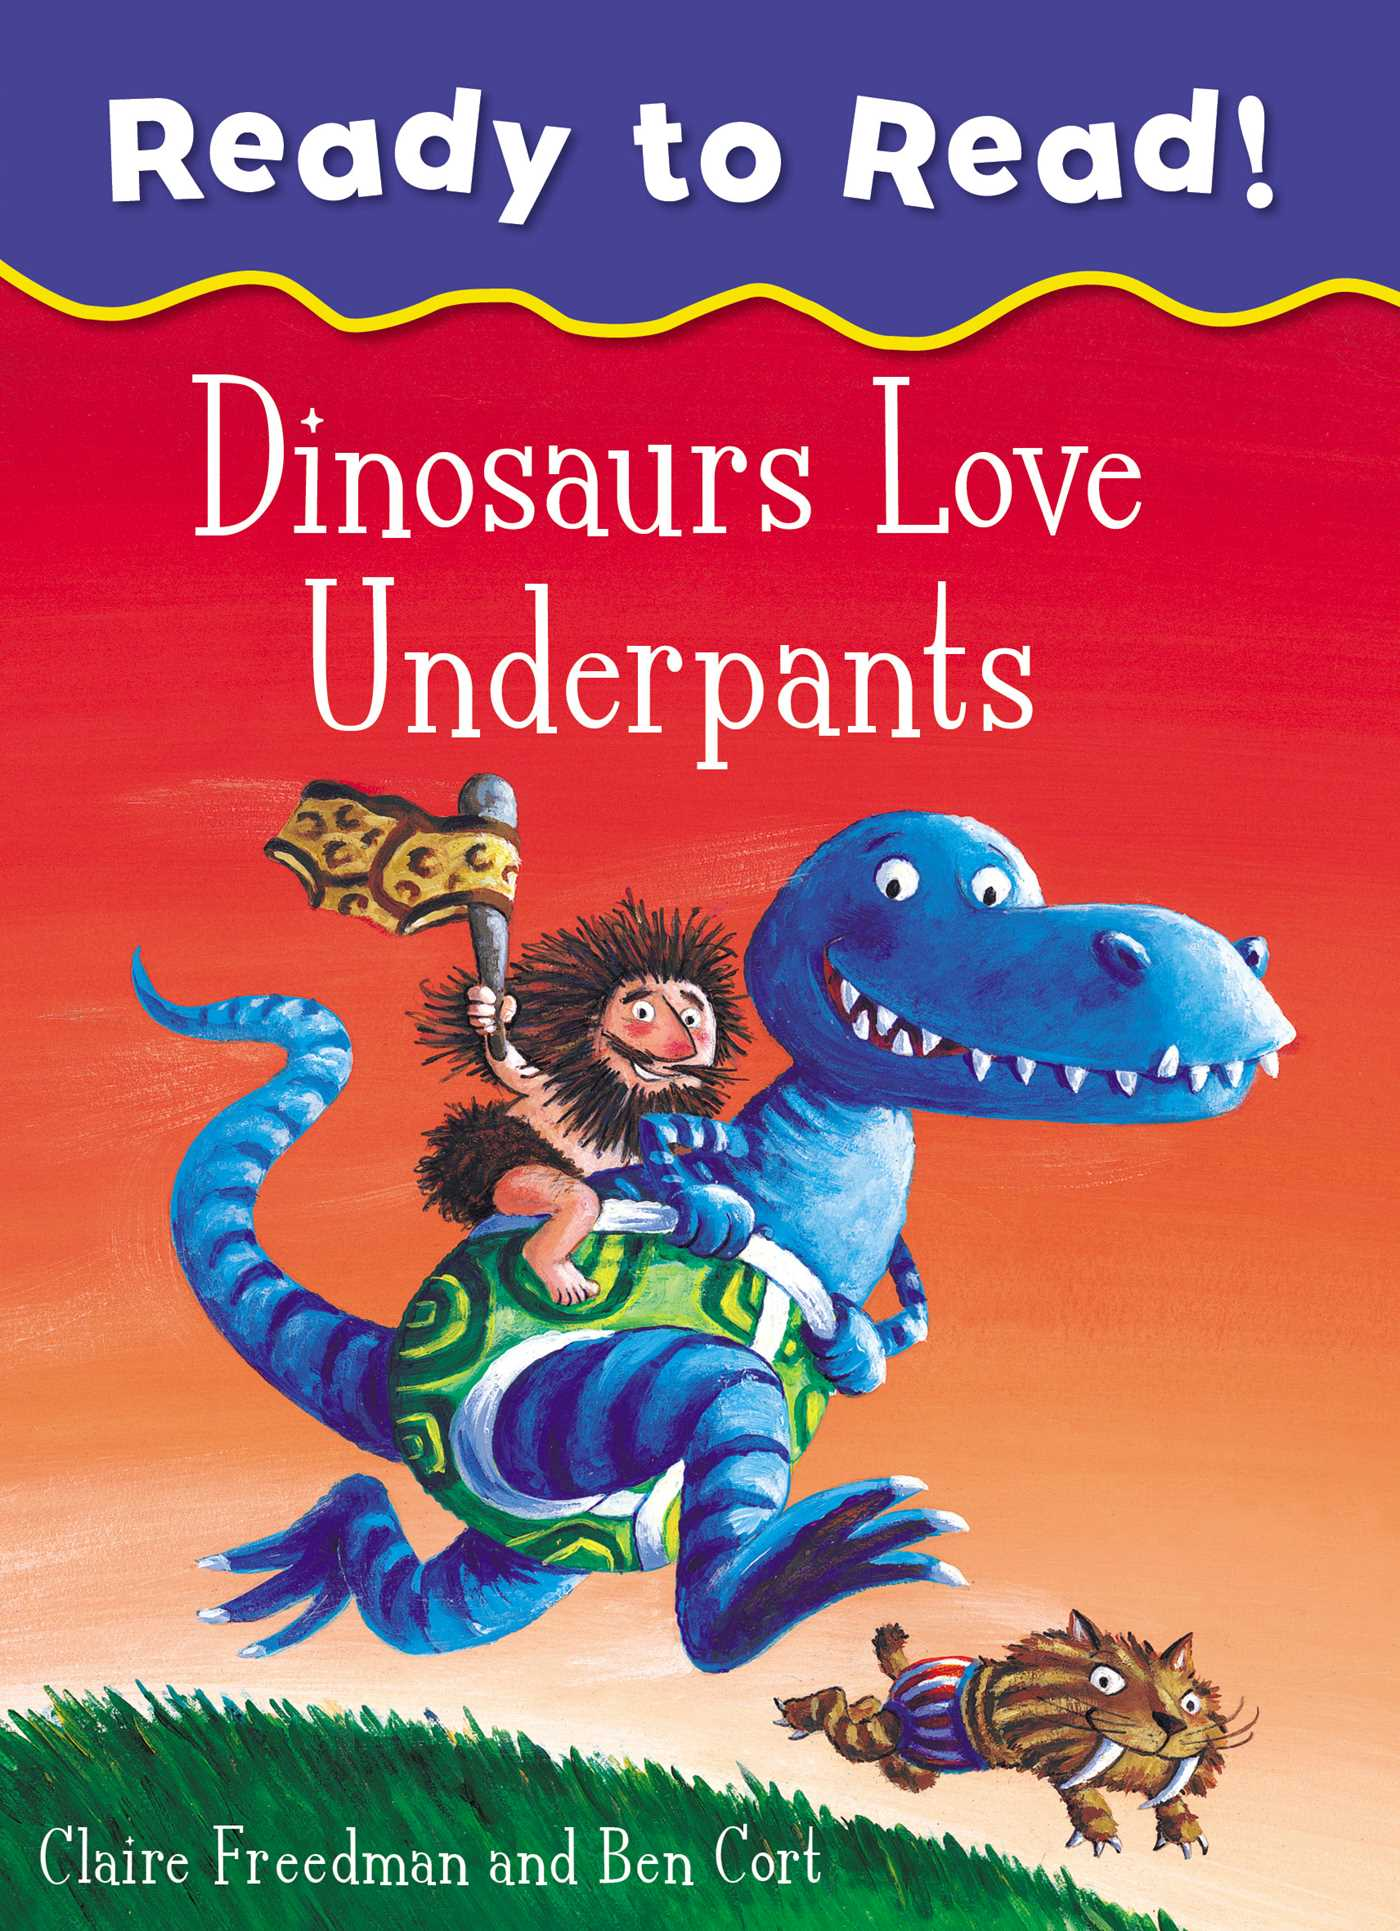 Dinosaurs love underpants ready to read 9781471169366 hr